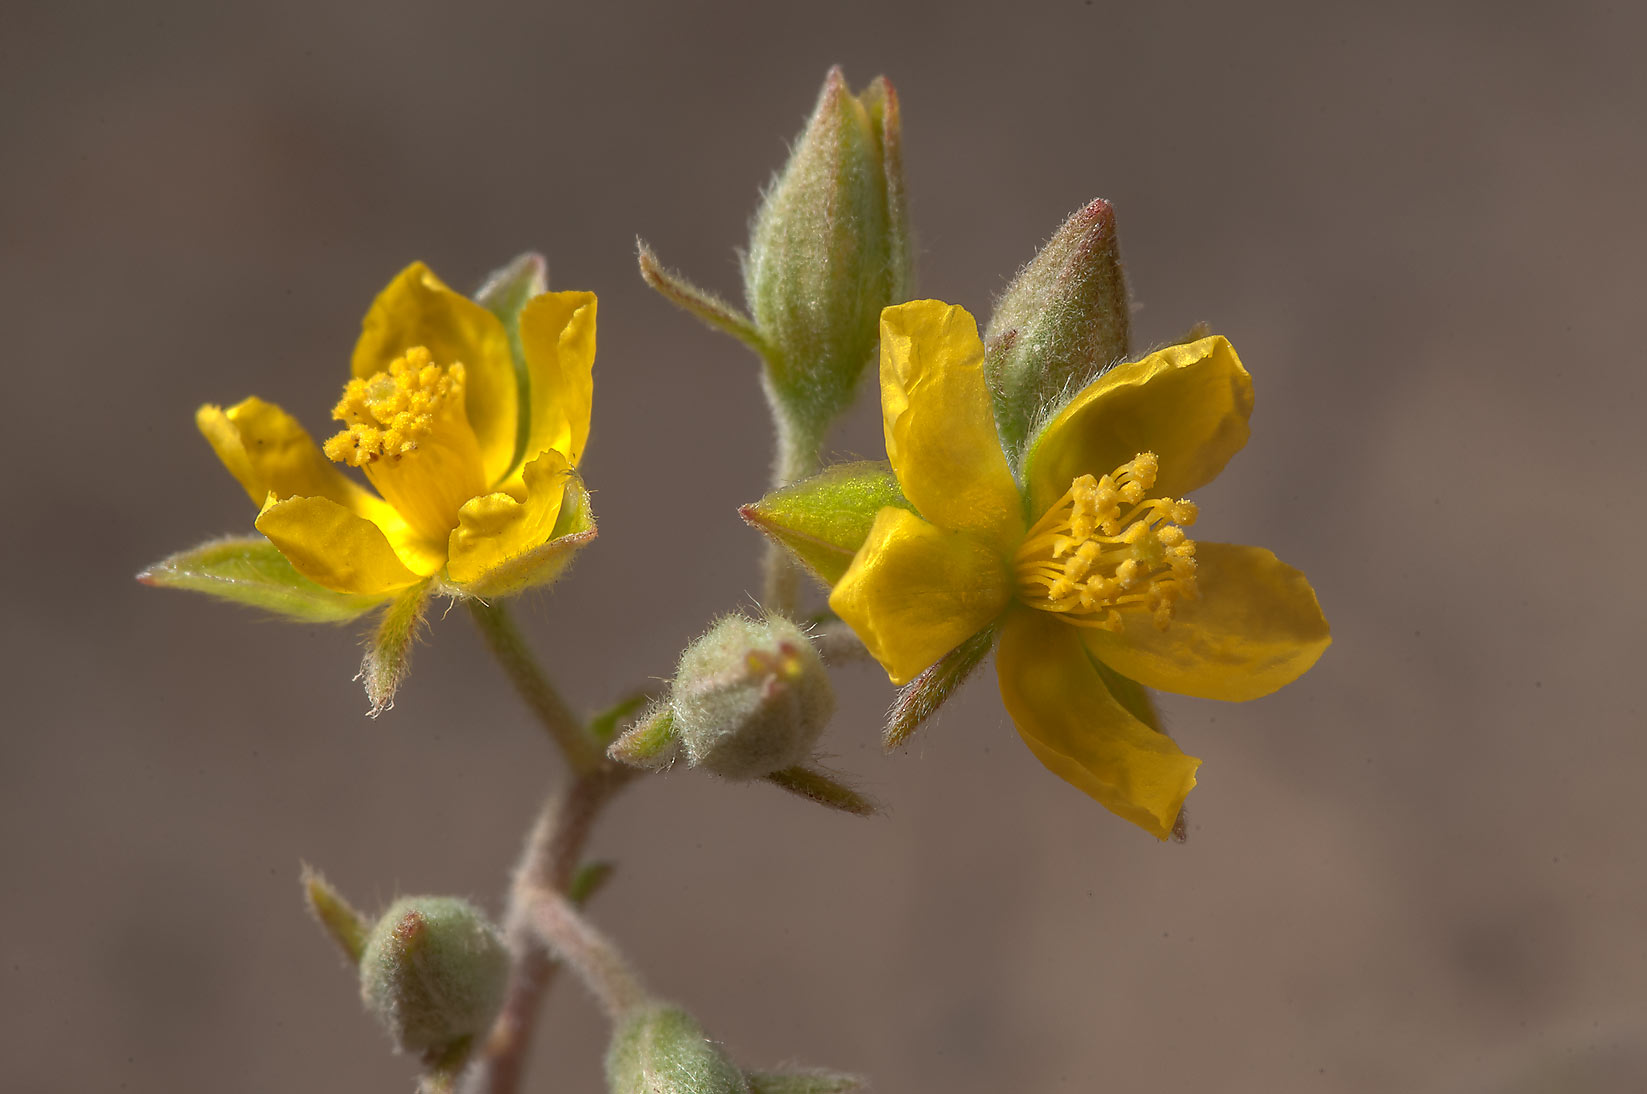 Flowers of Helianthemum kahiricum in desert near...of Ras Laffan, north from Doha. Qatar